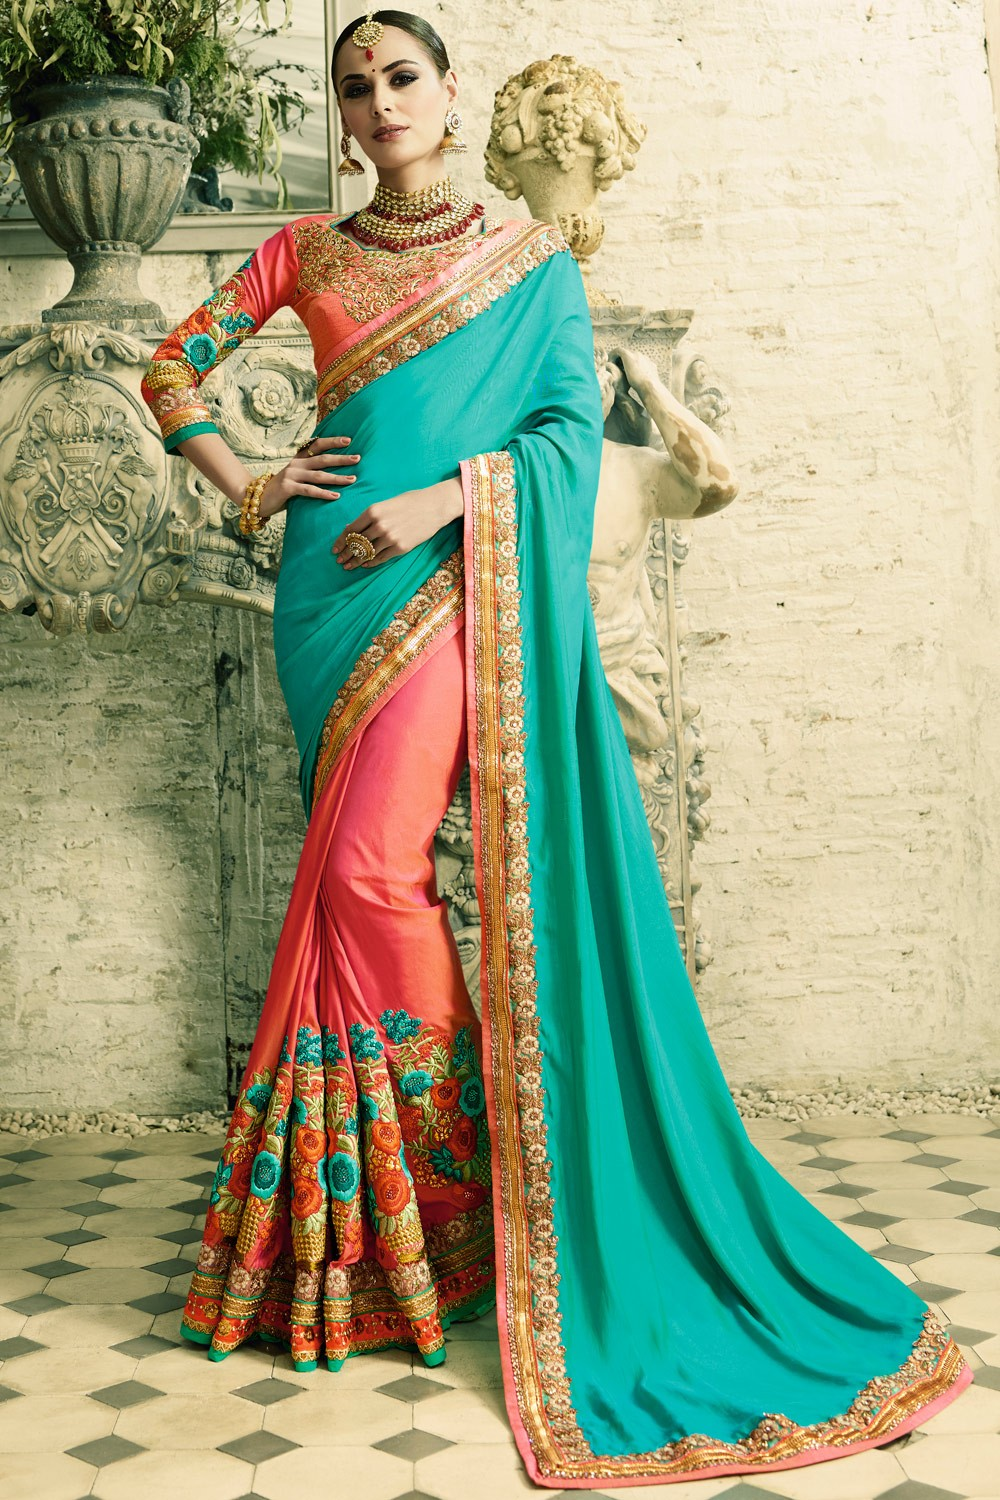 b3542feefd Paaneri Designer Shaded Light Sea Green With Pink Color Embroidery Work  Zari Border Silk Georgette Saree-Product Code-17102770911 - Sarees - Women's